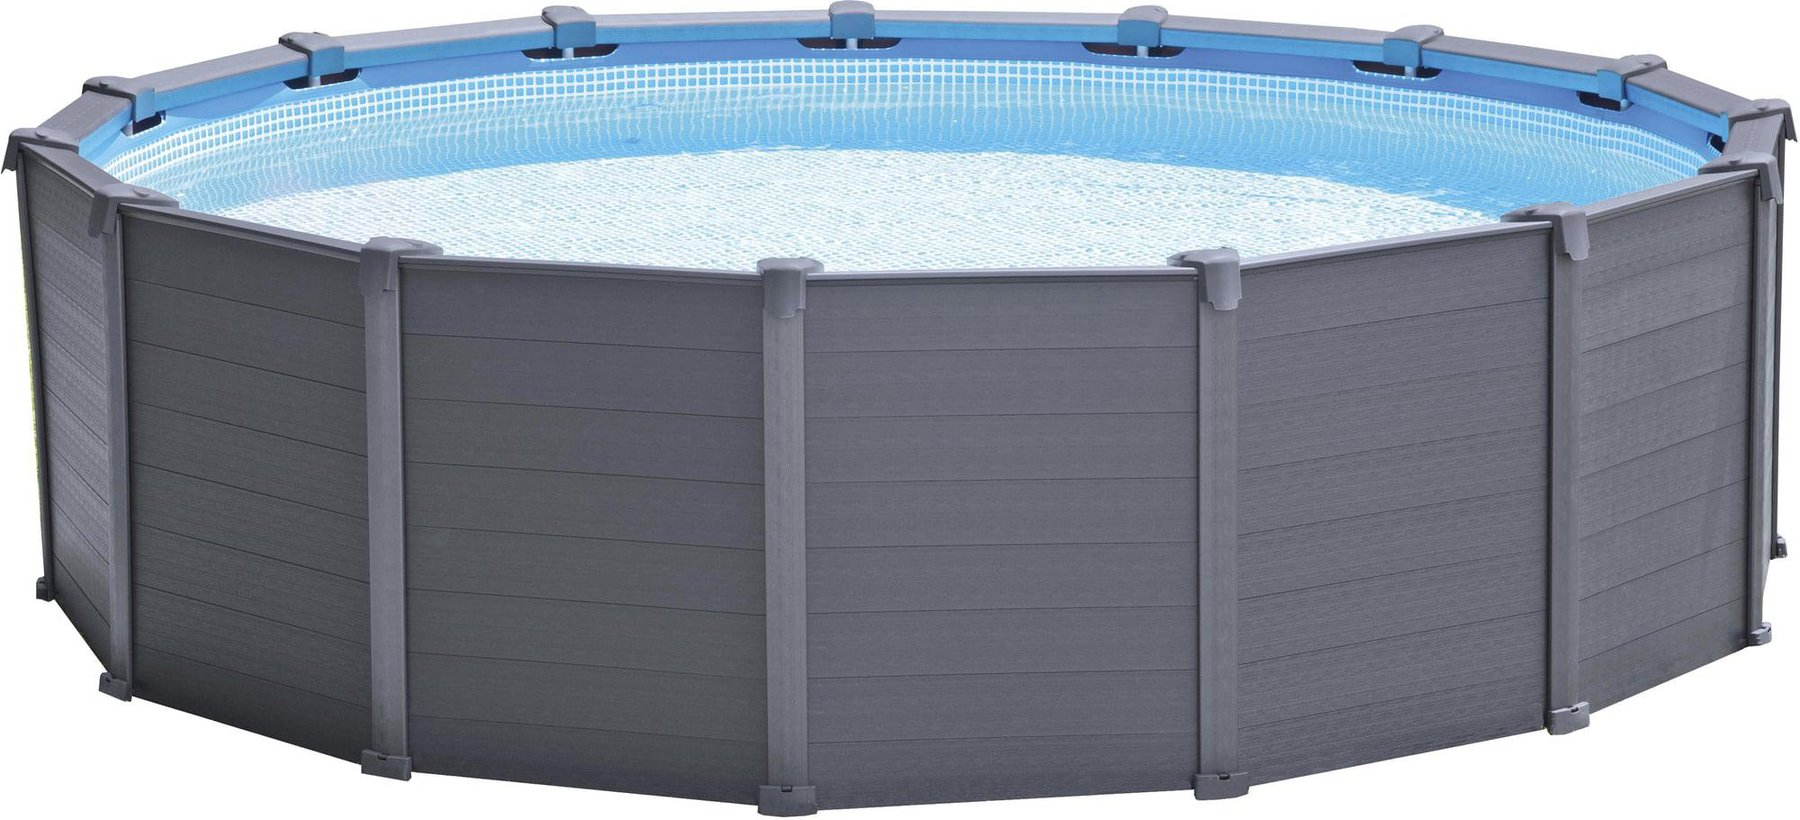 Pool Kaufen Baumarkt Intex Pools Graphite 478 X 124 Cm 28382